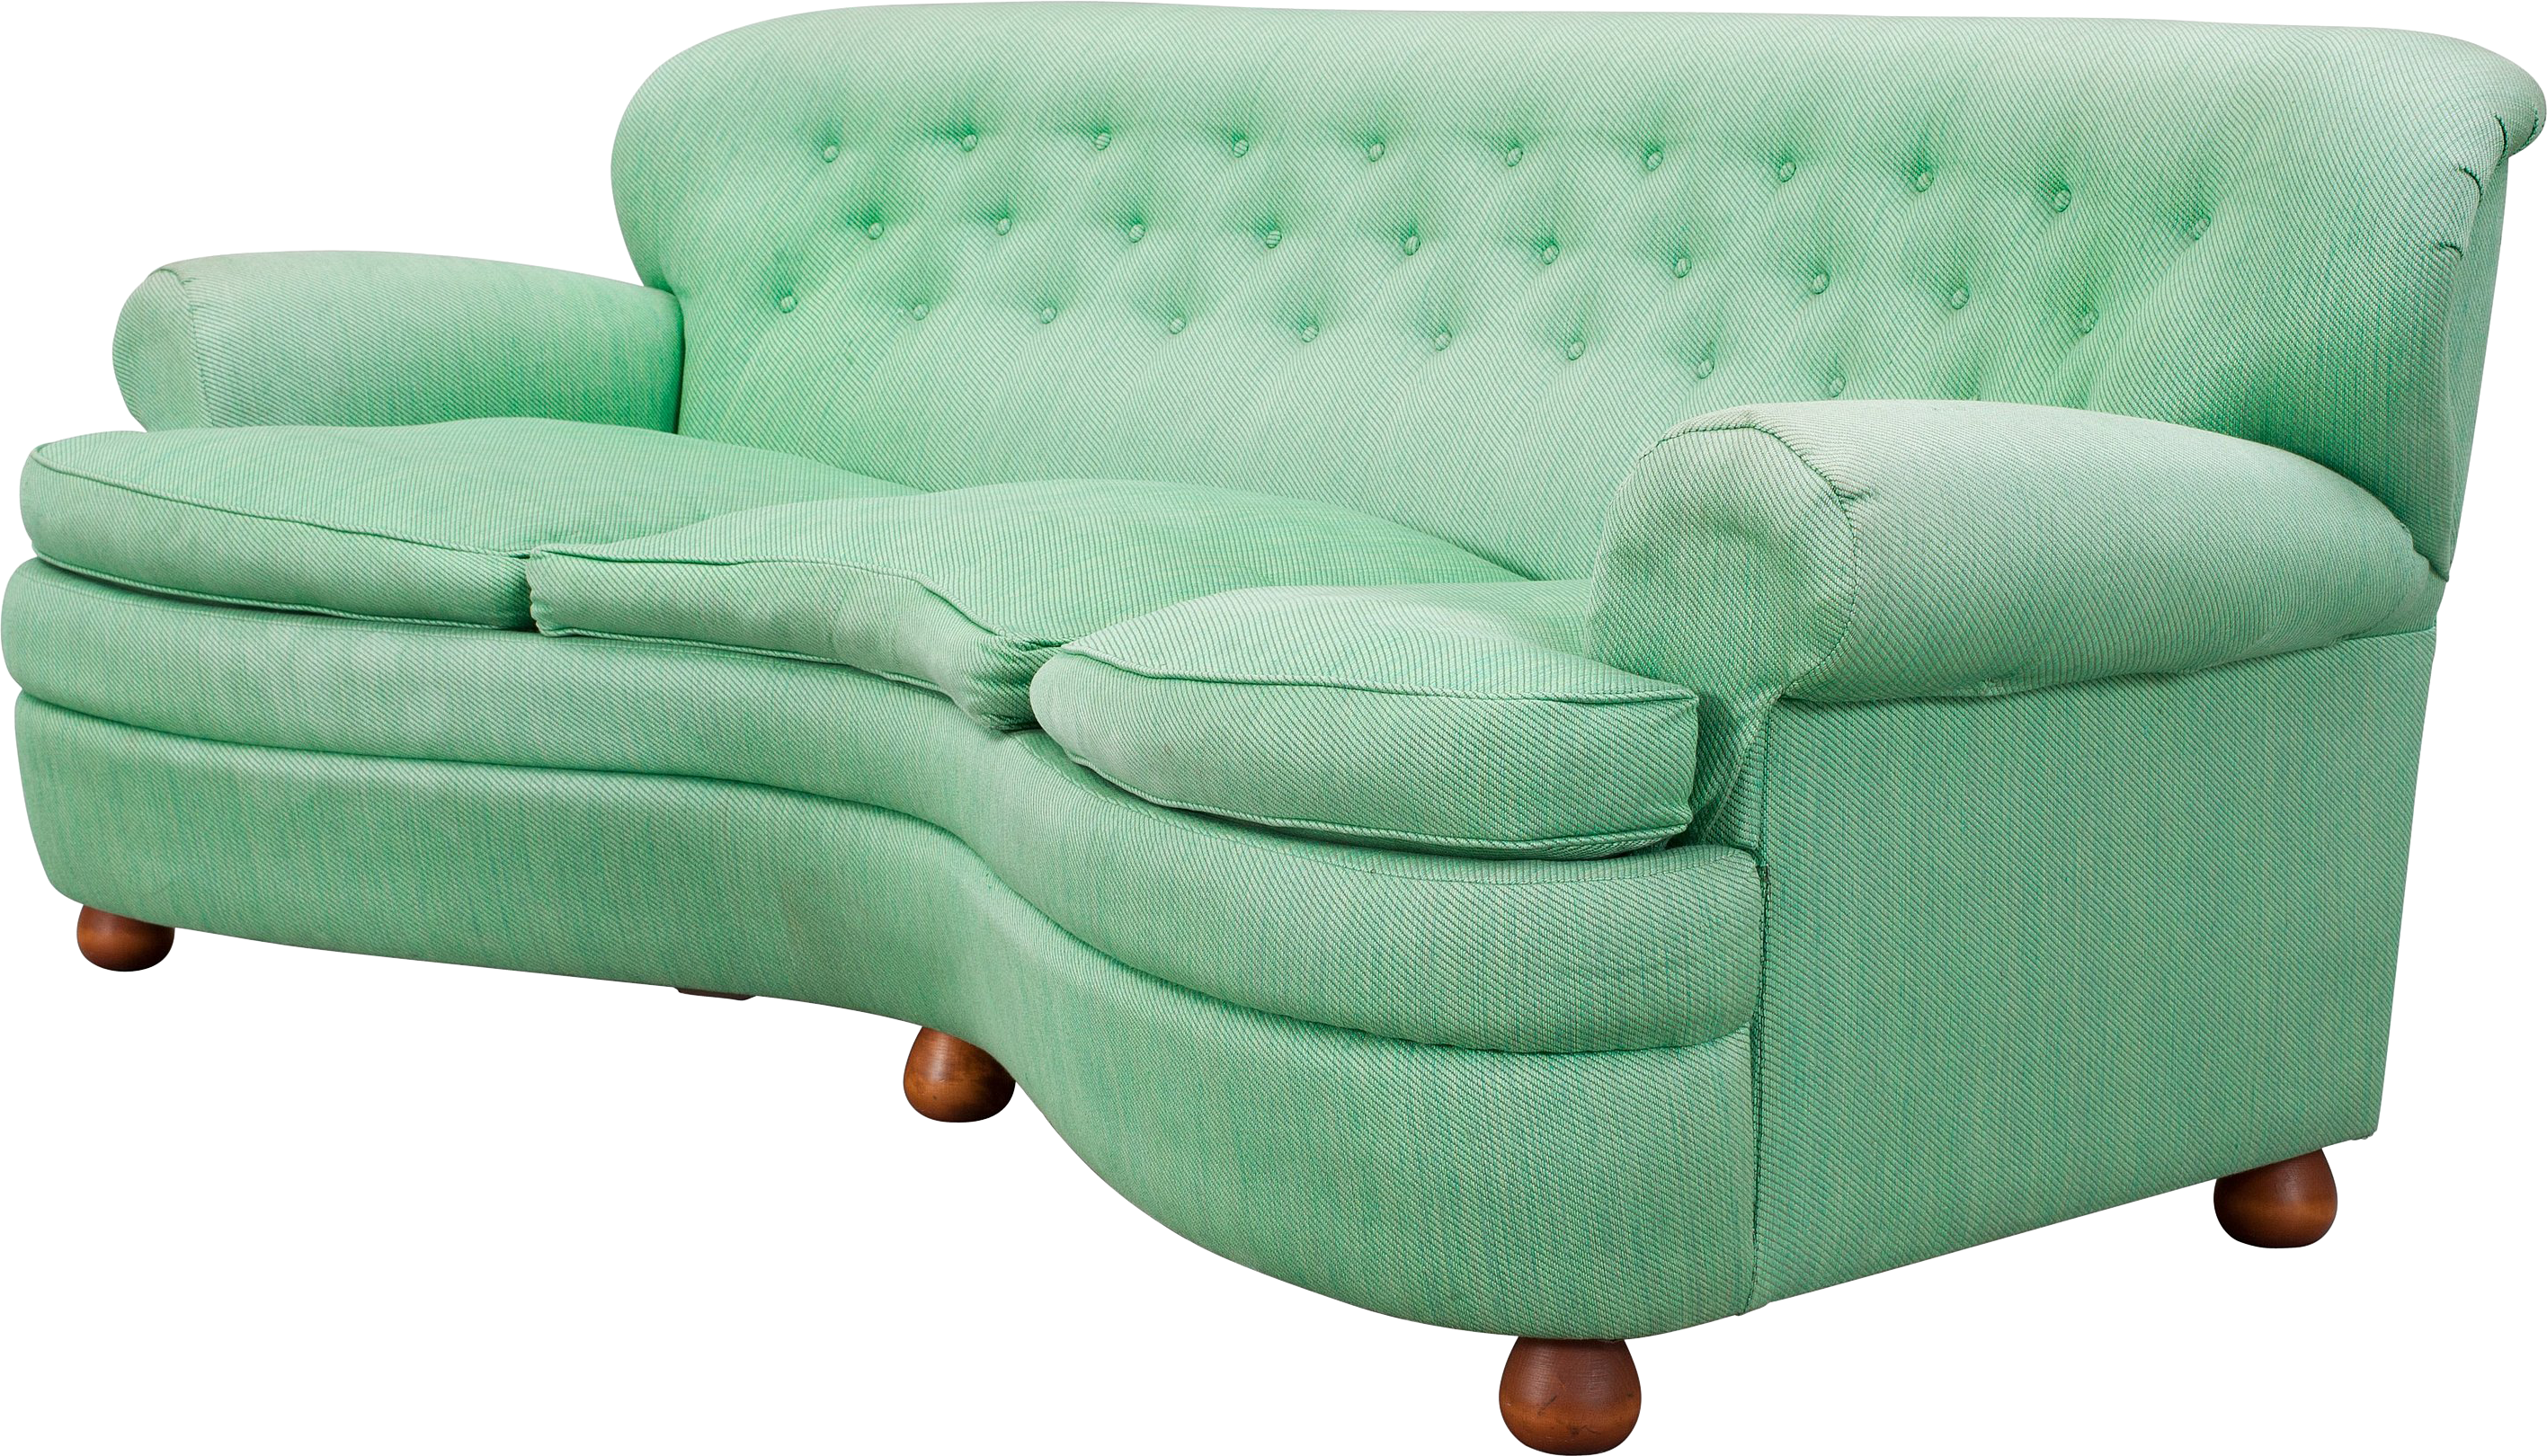 Couch clipart green couch. Sofa png images free